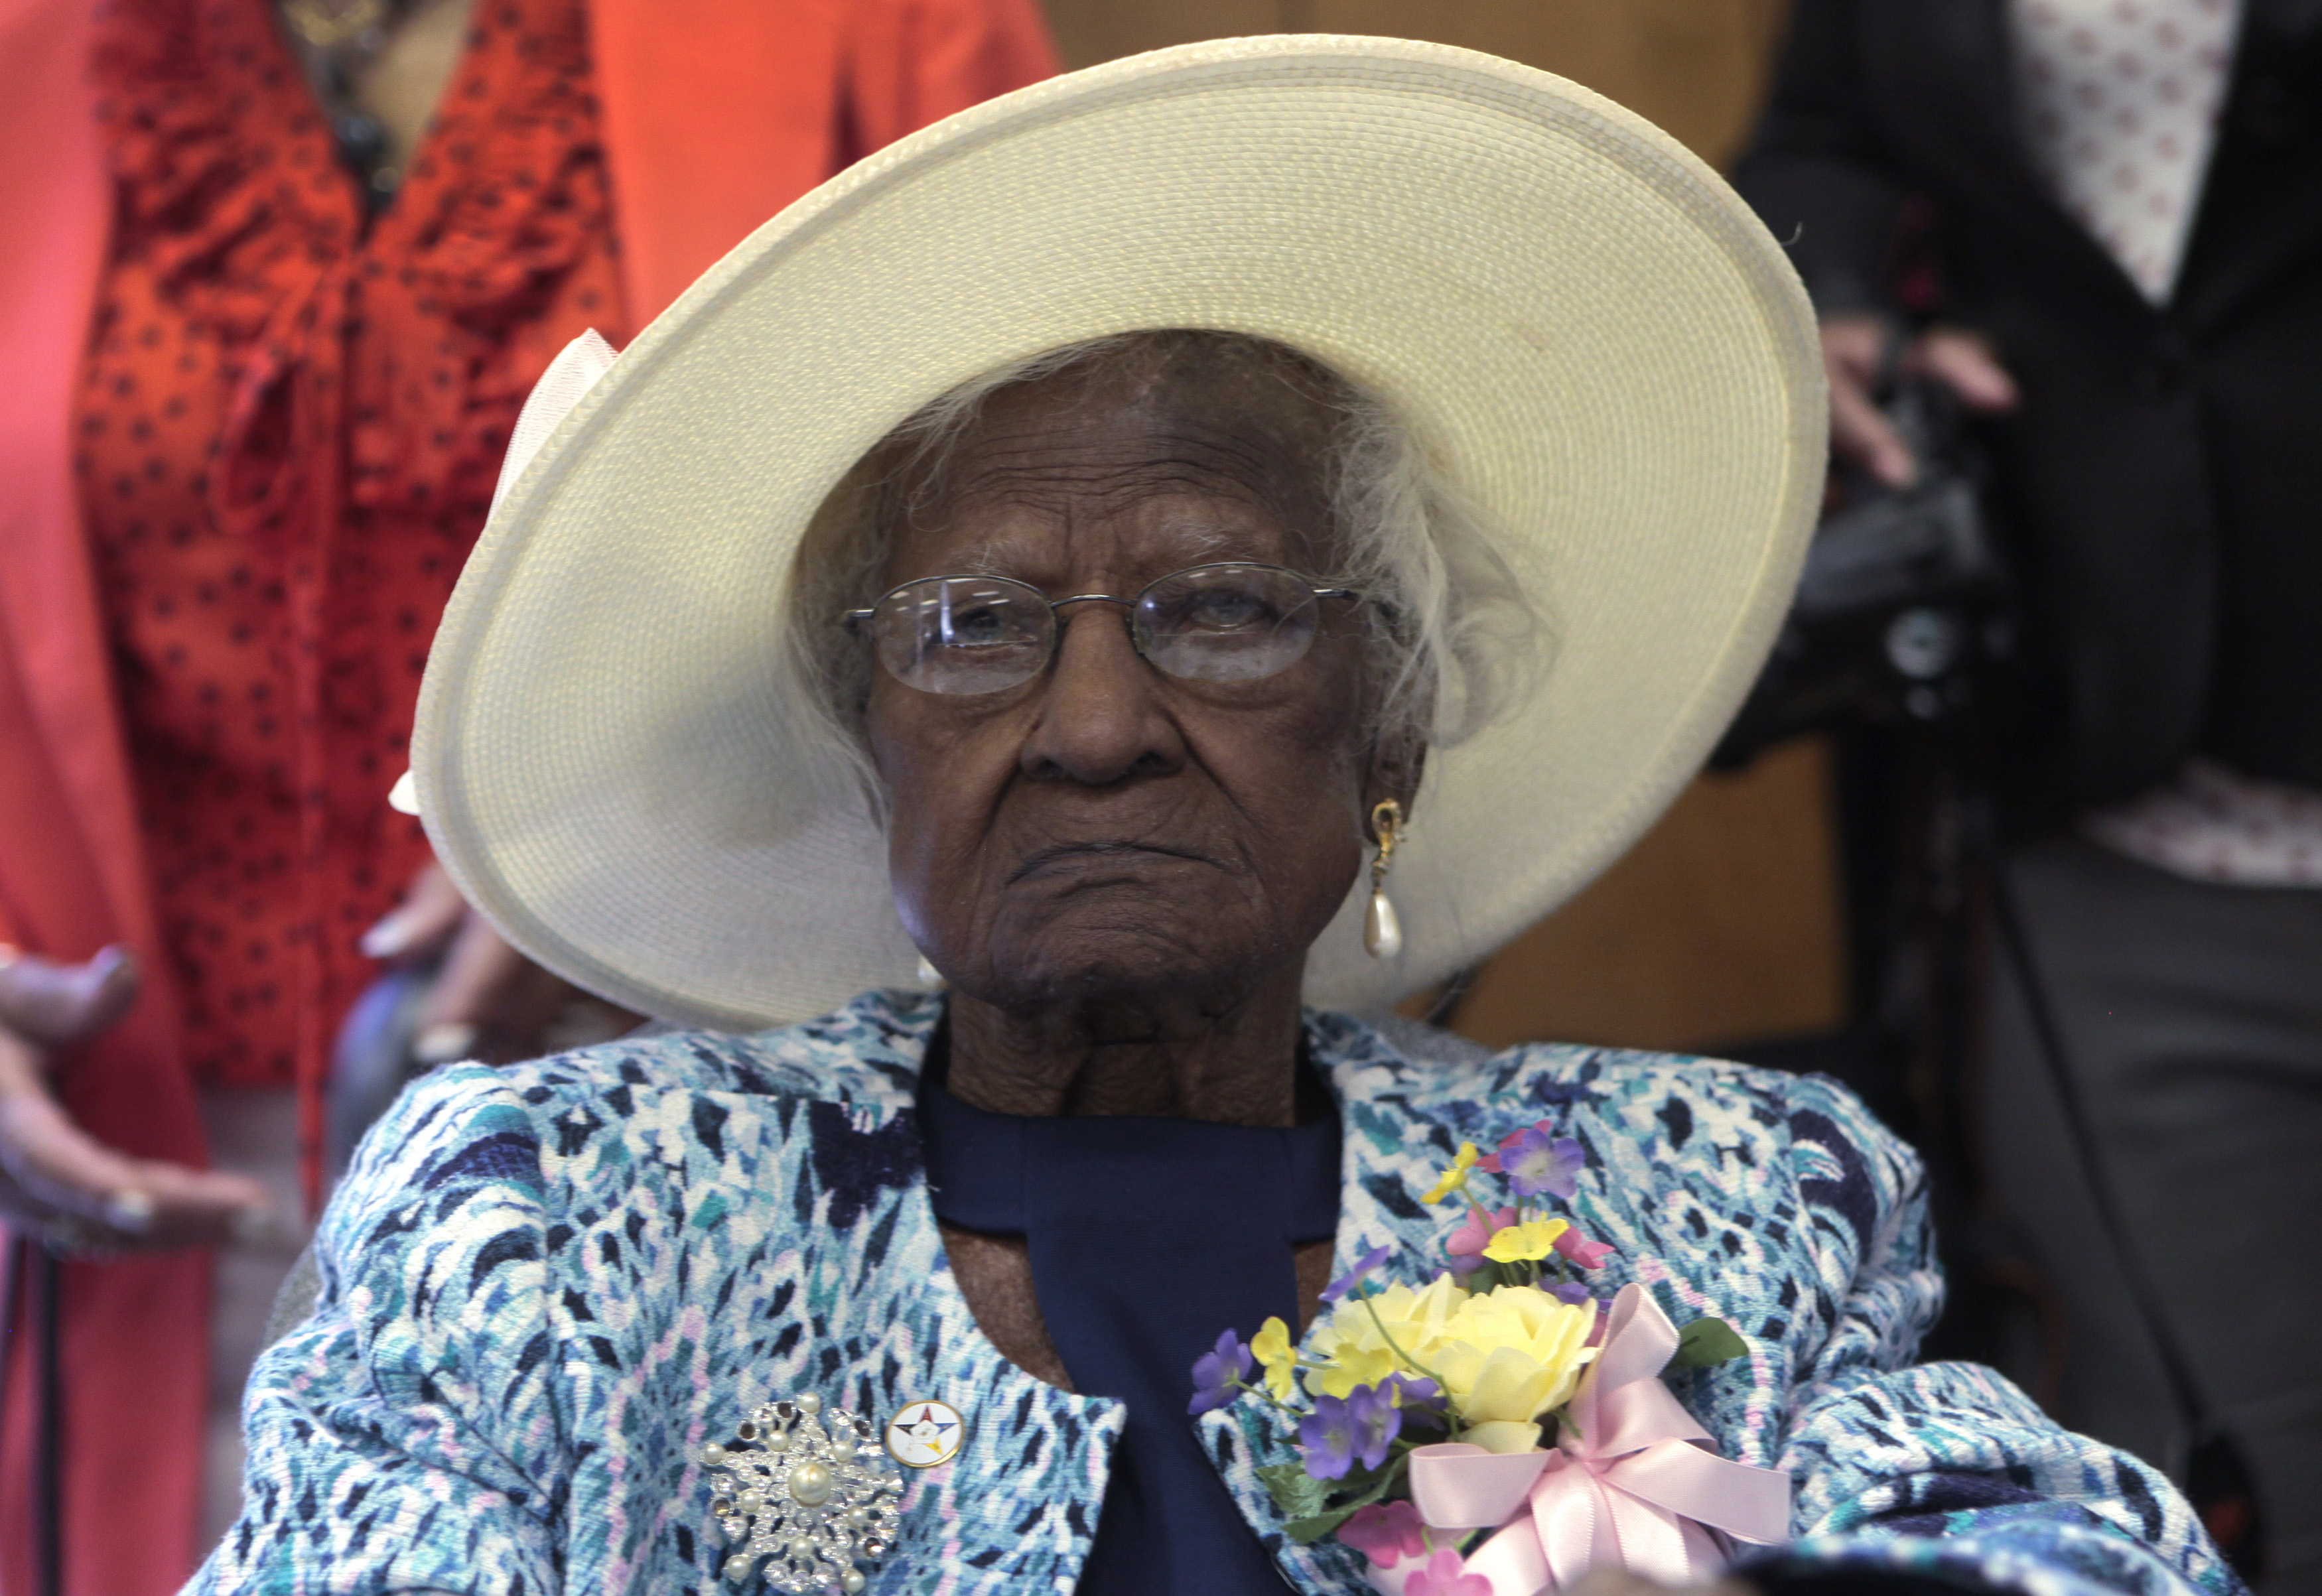 Talley sits at the head table during a celebration of her 115th birthday at the New Jerusalem Missionary Baptist Church in Inkster